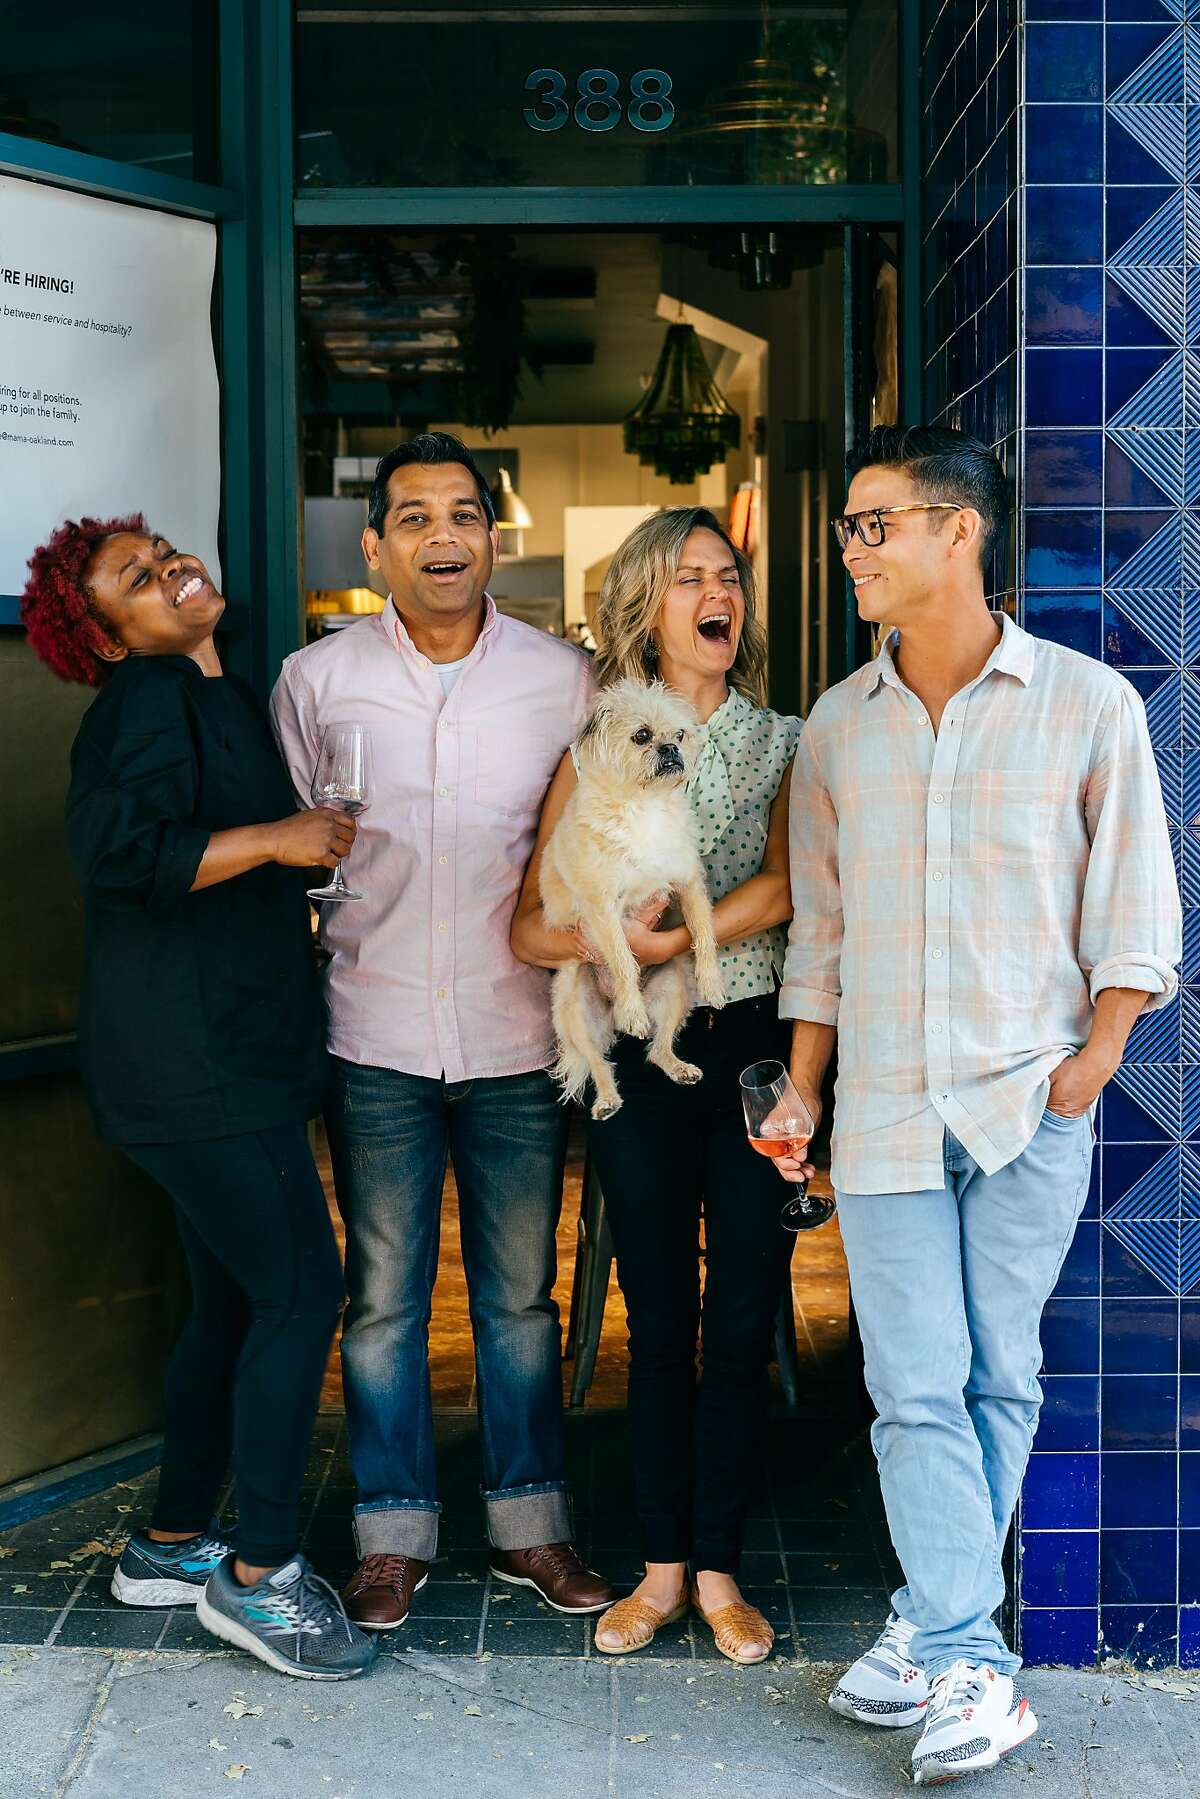 Mama, a new red-sauce restaurant in Oakland from the team behind the Bay Grape wine shop, opens July 8, 2019.